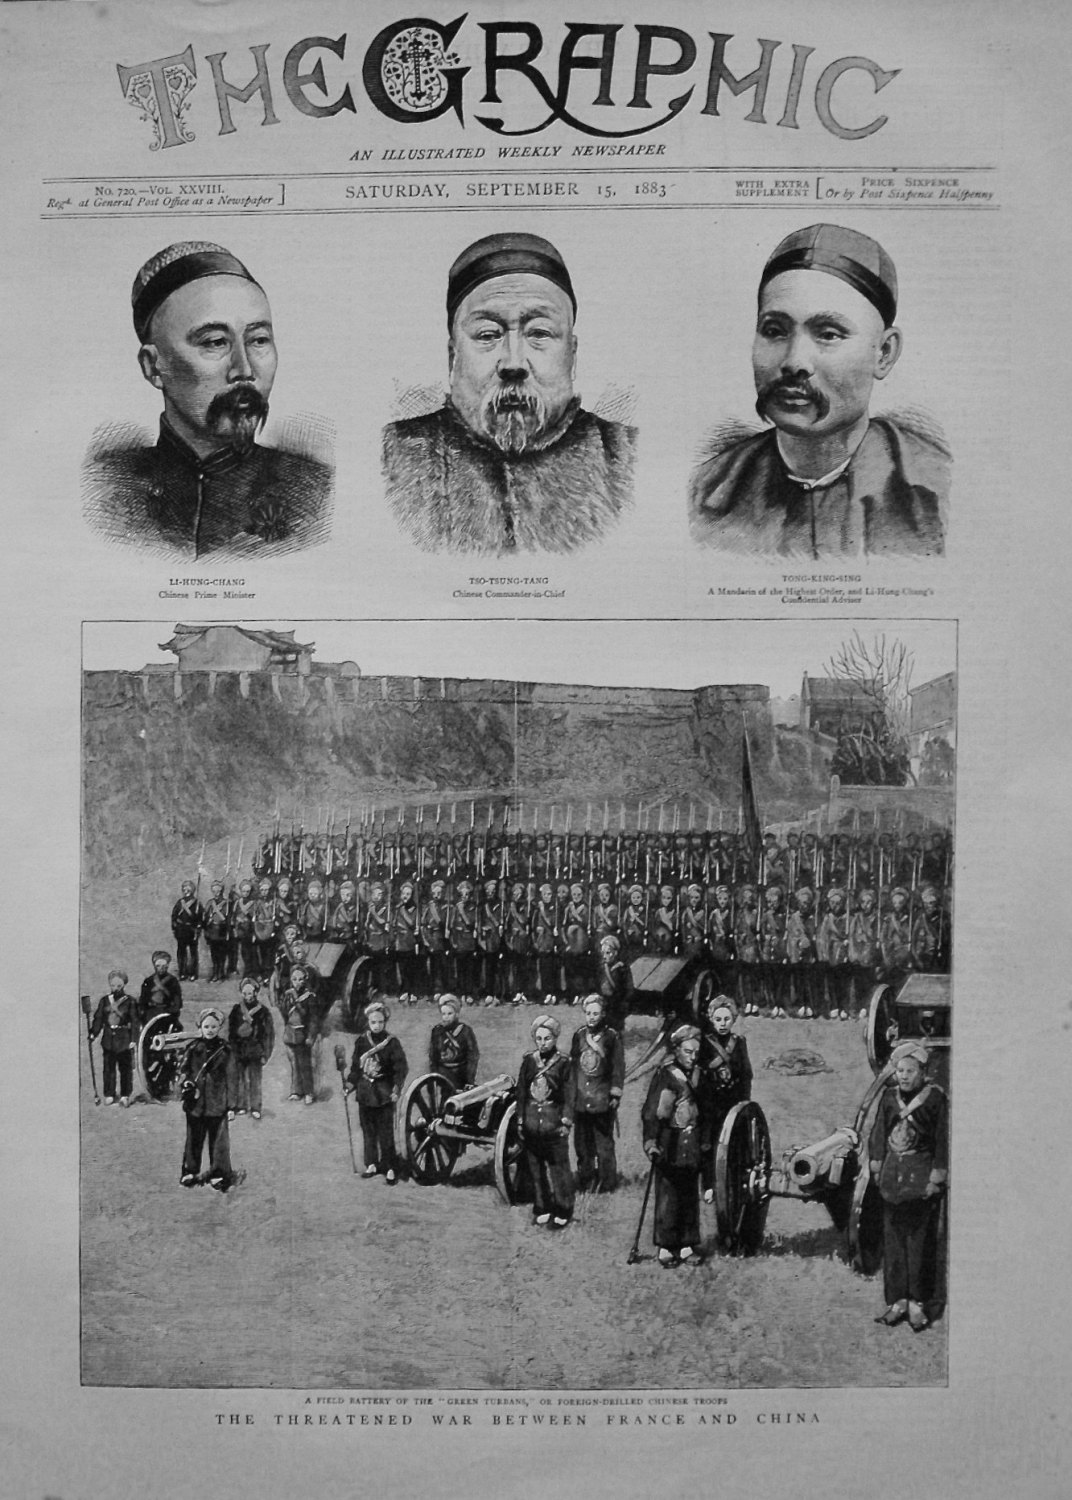 Threatened War between France and China. 1883